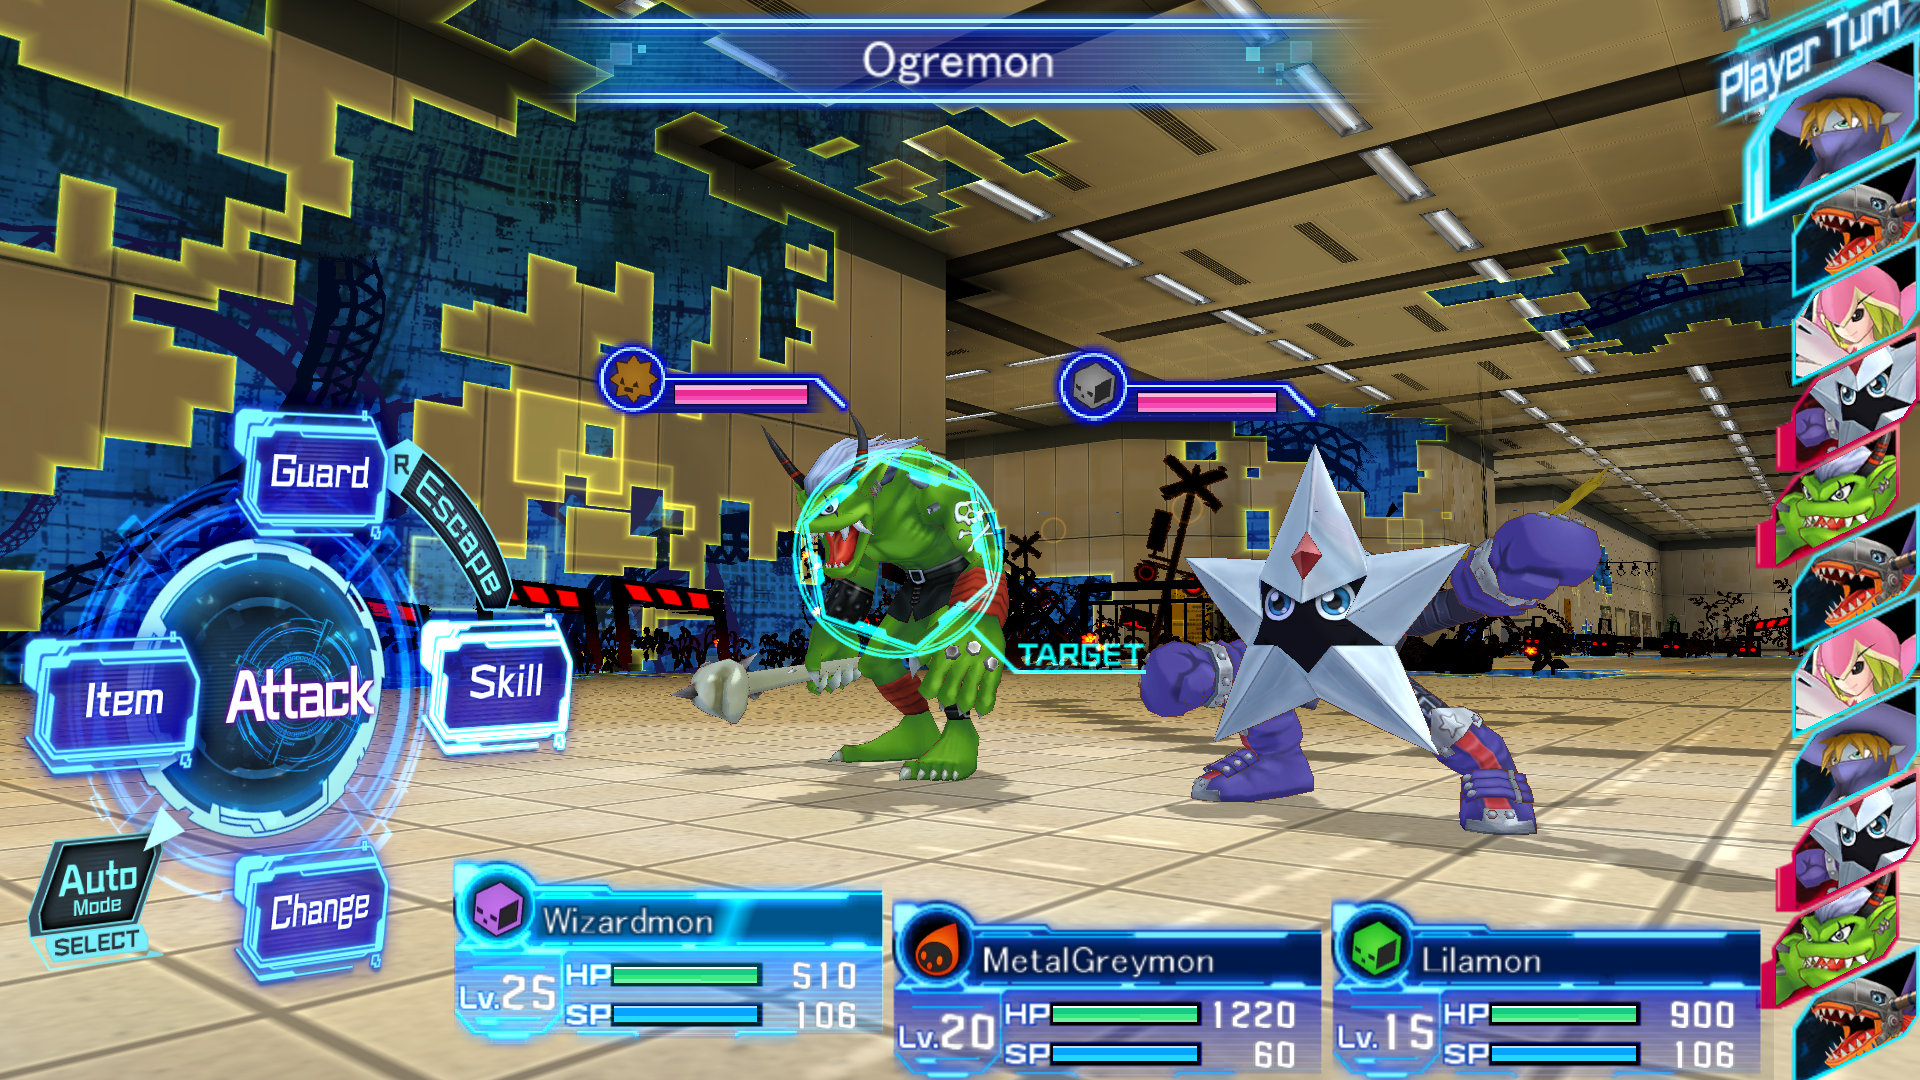 Last Game You've Never Played And Your Thoughts Digimon-story-cyber-sleuth-screenshot-07-ps4-psvita-us-7jan16?$MediaCarousel_Original$